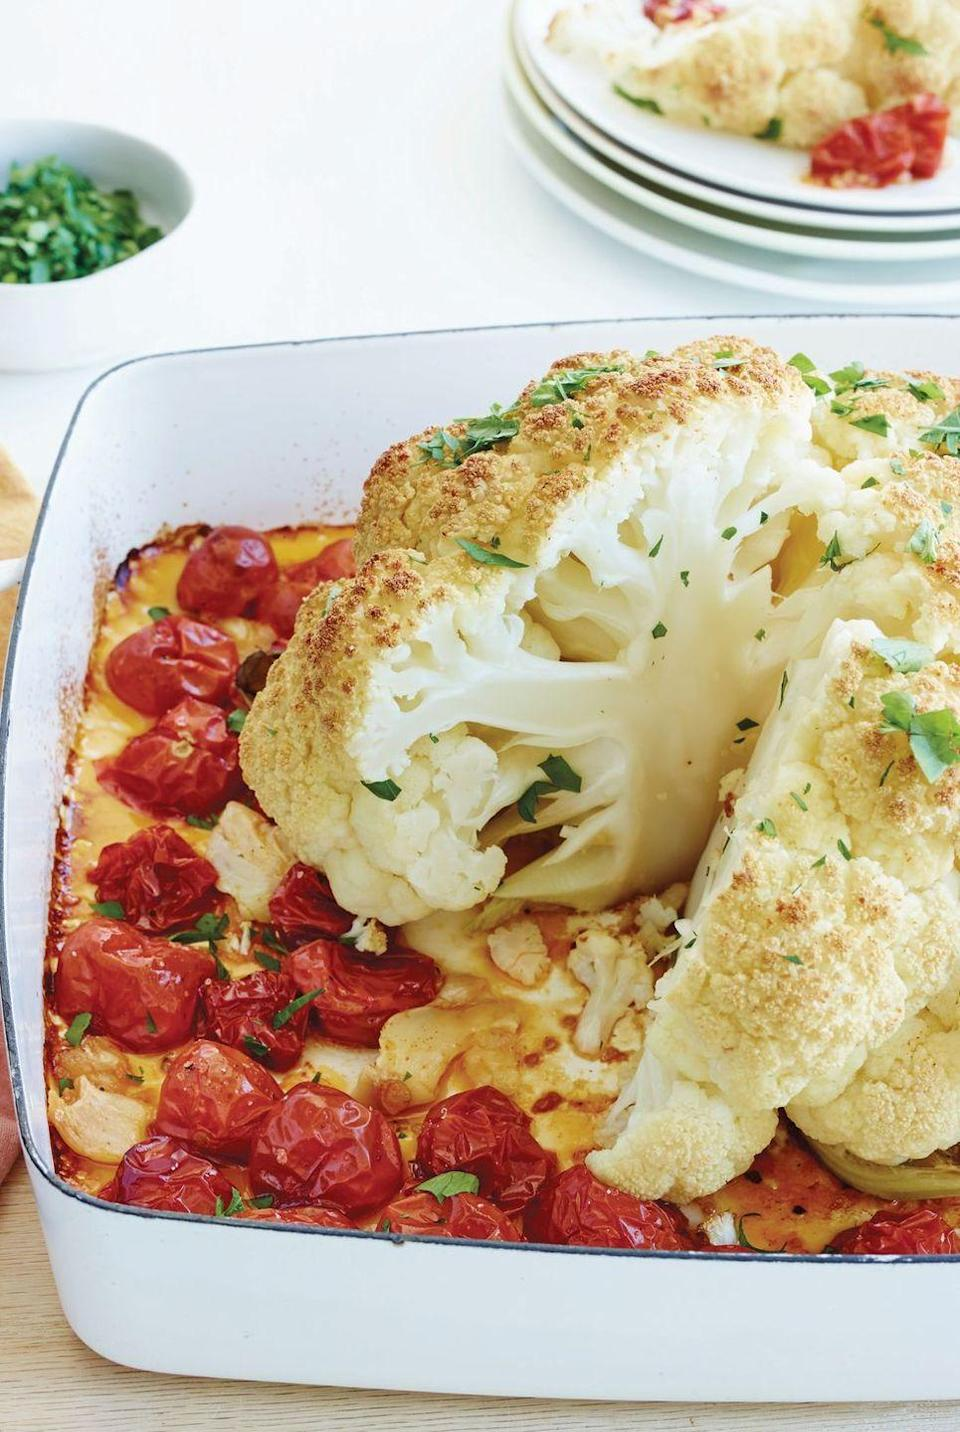 """<p>I love the drama of this <a href=""""https://www.delish.com/uk/cooking/recipes/a29695647/thanksgiving-cauliflower-recipe/"""" rel=""""nofollow noopener"""" target=""""_blank"""" data-ylk=""""slk:whole roasted cauliflower"""" class=""""link rapid-noclick-resp"""">whole roasted cauliflower</a>—the presentation, the slicing—which always brings down the house.</p><p>Get the <a href=""""https://www.delish.com/uk/cooking/recipes/a34639851/whole-roasted-cauliflower-tomatoes-and-garlic-recipe/"""" rel=""""nofollow noopener"""" target=""""_blank"""" data-ylk=""""slk:Whole Roasted Cauliflower, Tomatoes and Garlic"""" class=""""link rapid-noclick-resp"""">Whole Roasted Cauliflower, Tomatoes and Garlic</a> recipe.</p>"""